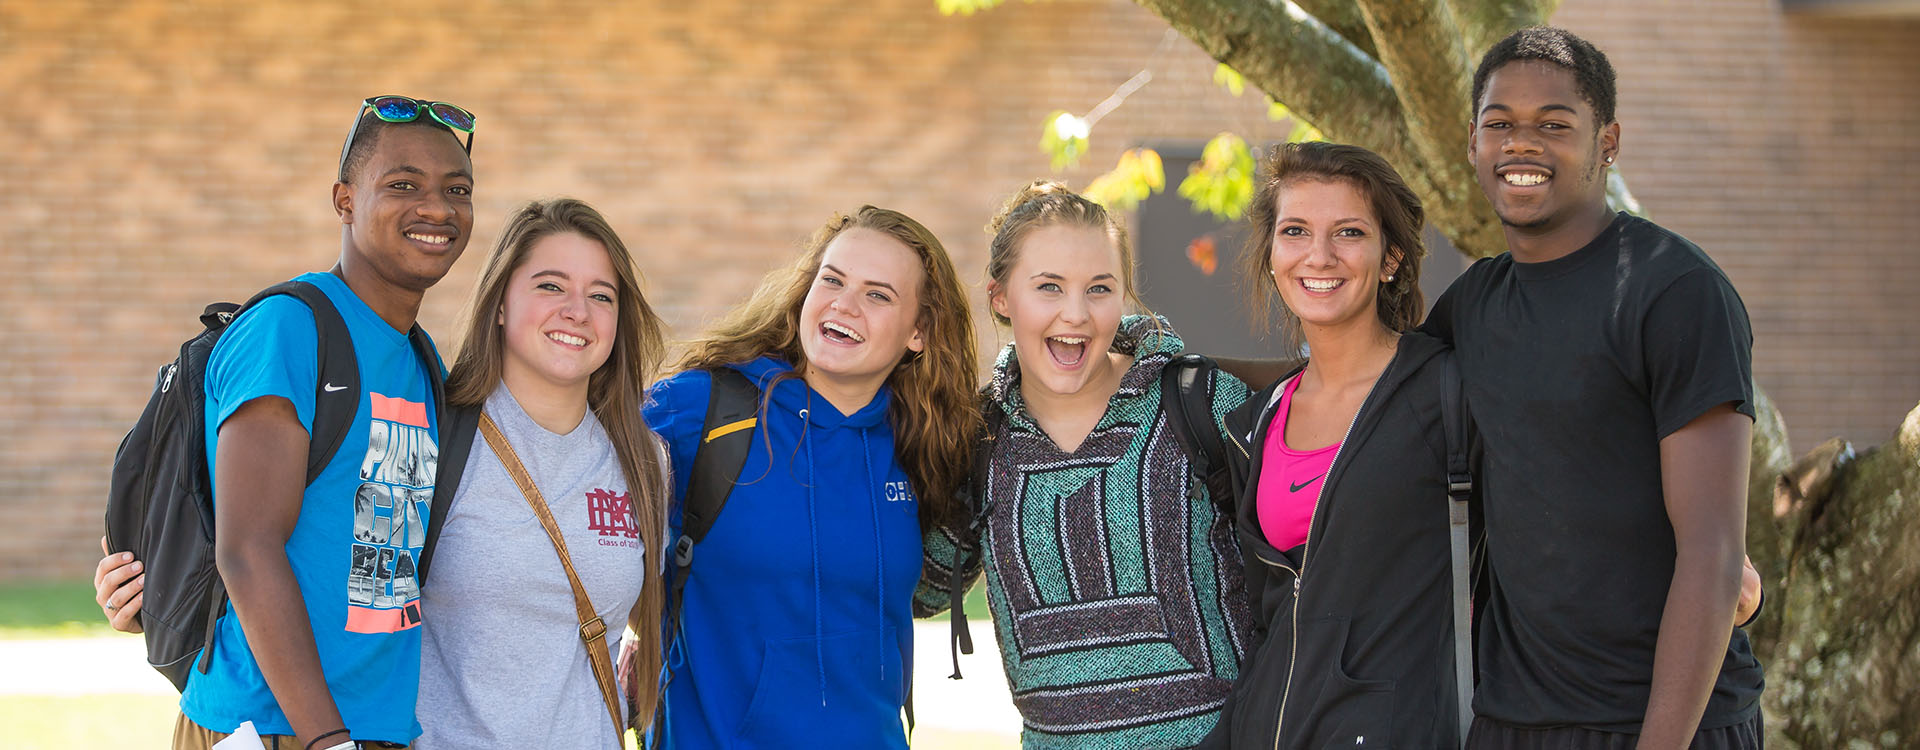 group of students smiling on campus